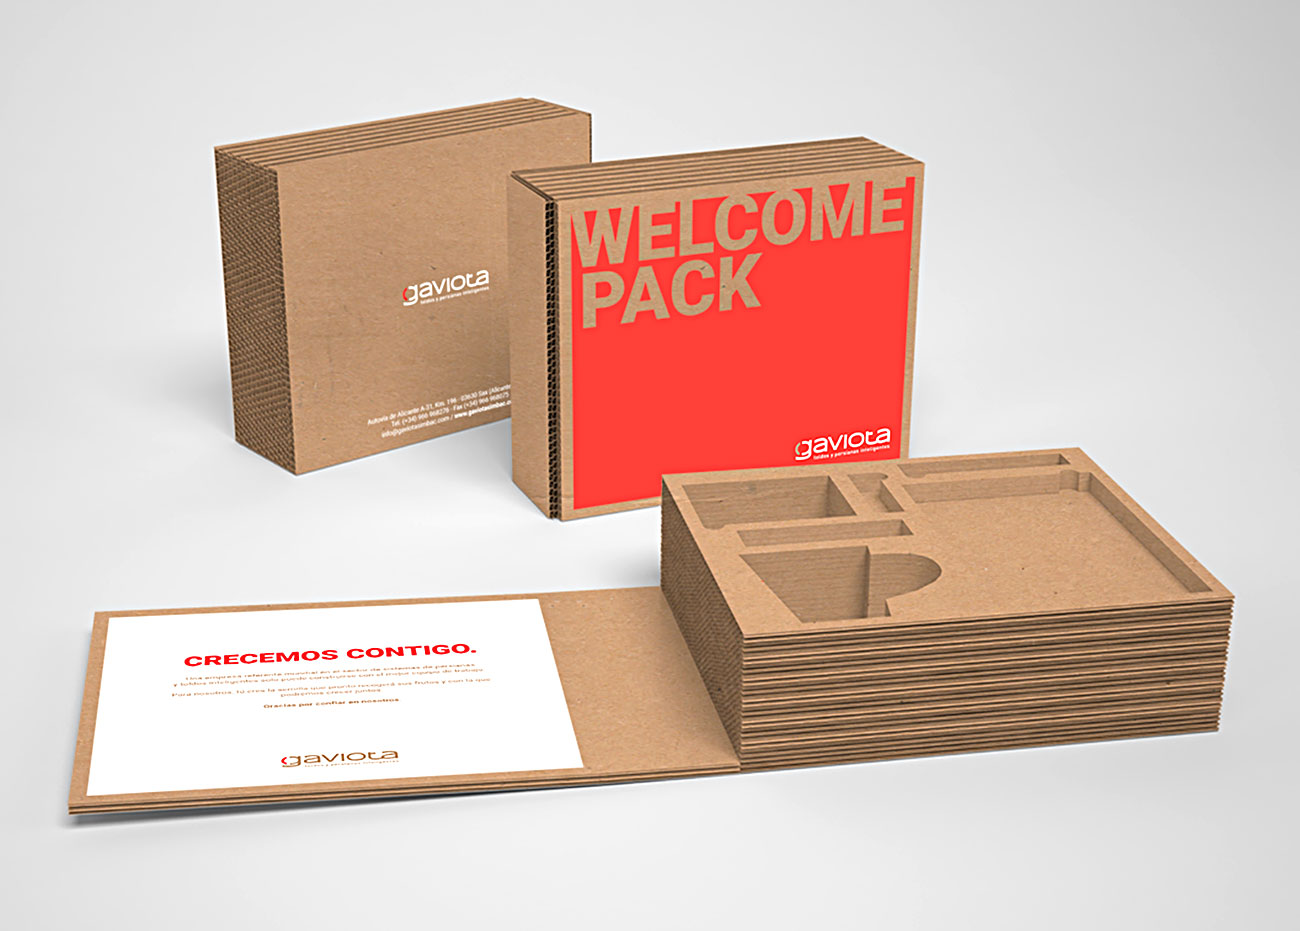 Welcome pack Gaviota